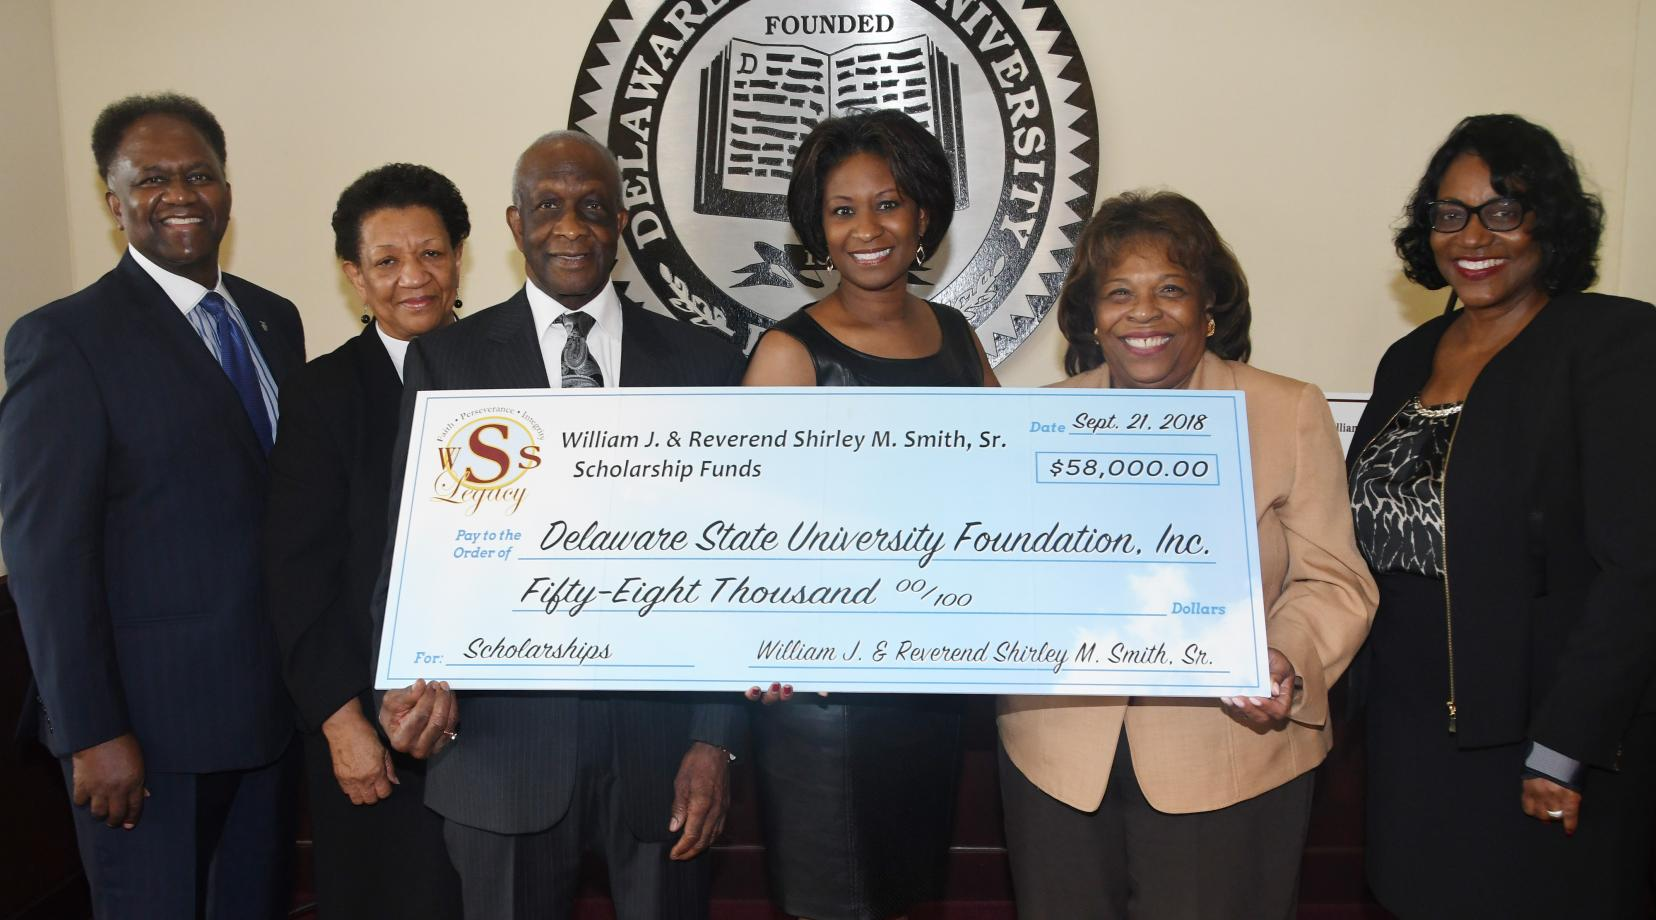 <p>(L-r) H.L. Larry, Rev. Shirley Smith, William J. Smith, S. Renee Smith-Larry, University President Wilma Mishoe, and Dr. Vita Pickrum pose for a photo after the Smiths presented the check to the institution.</p>